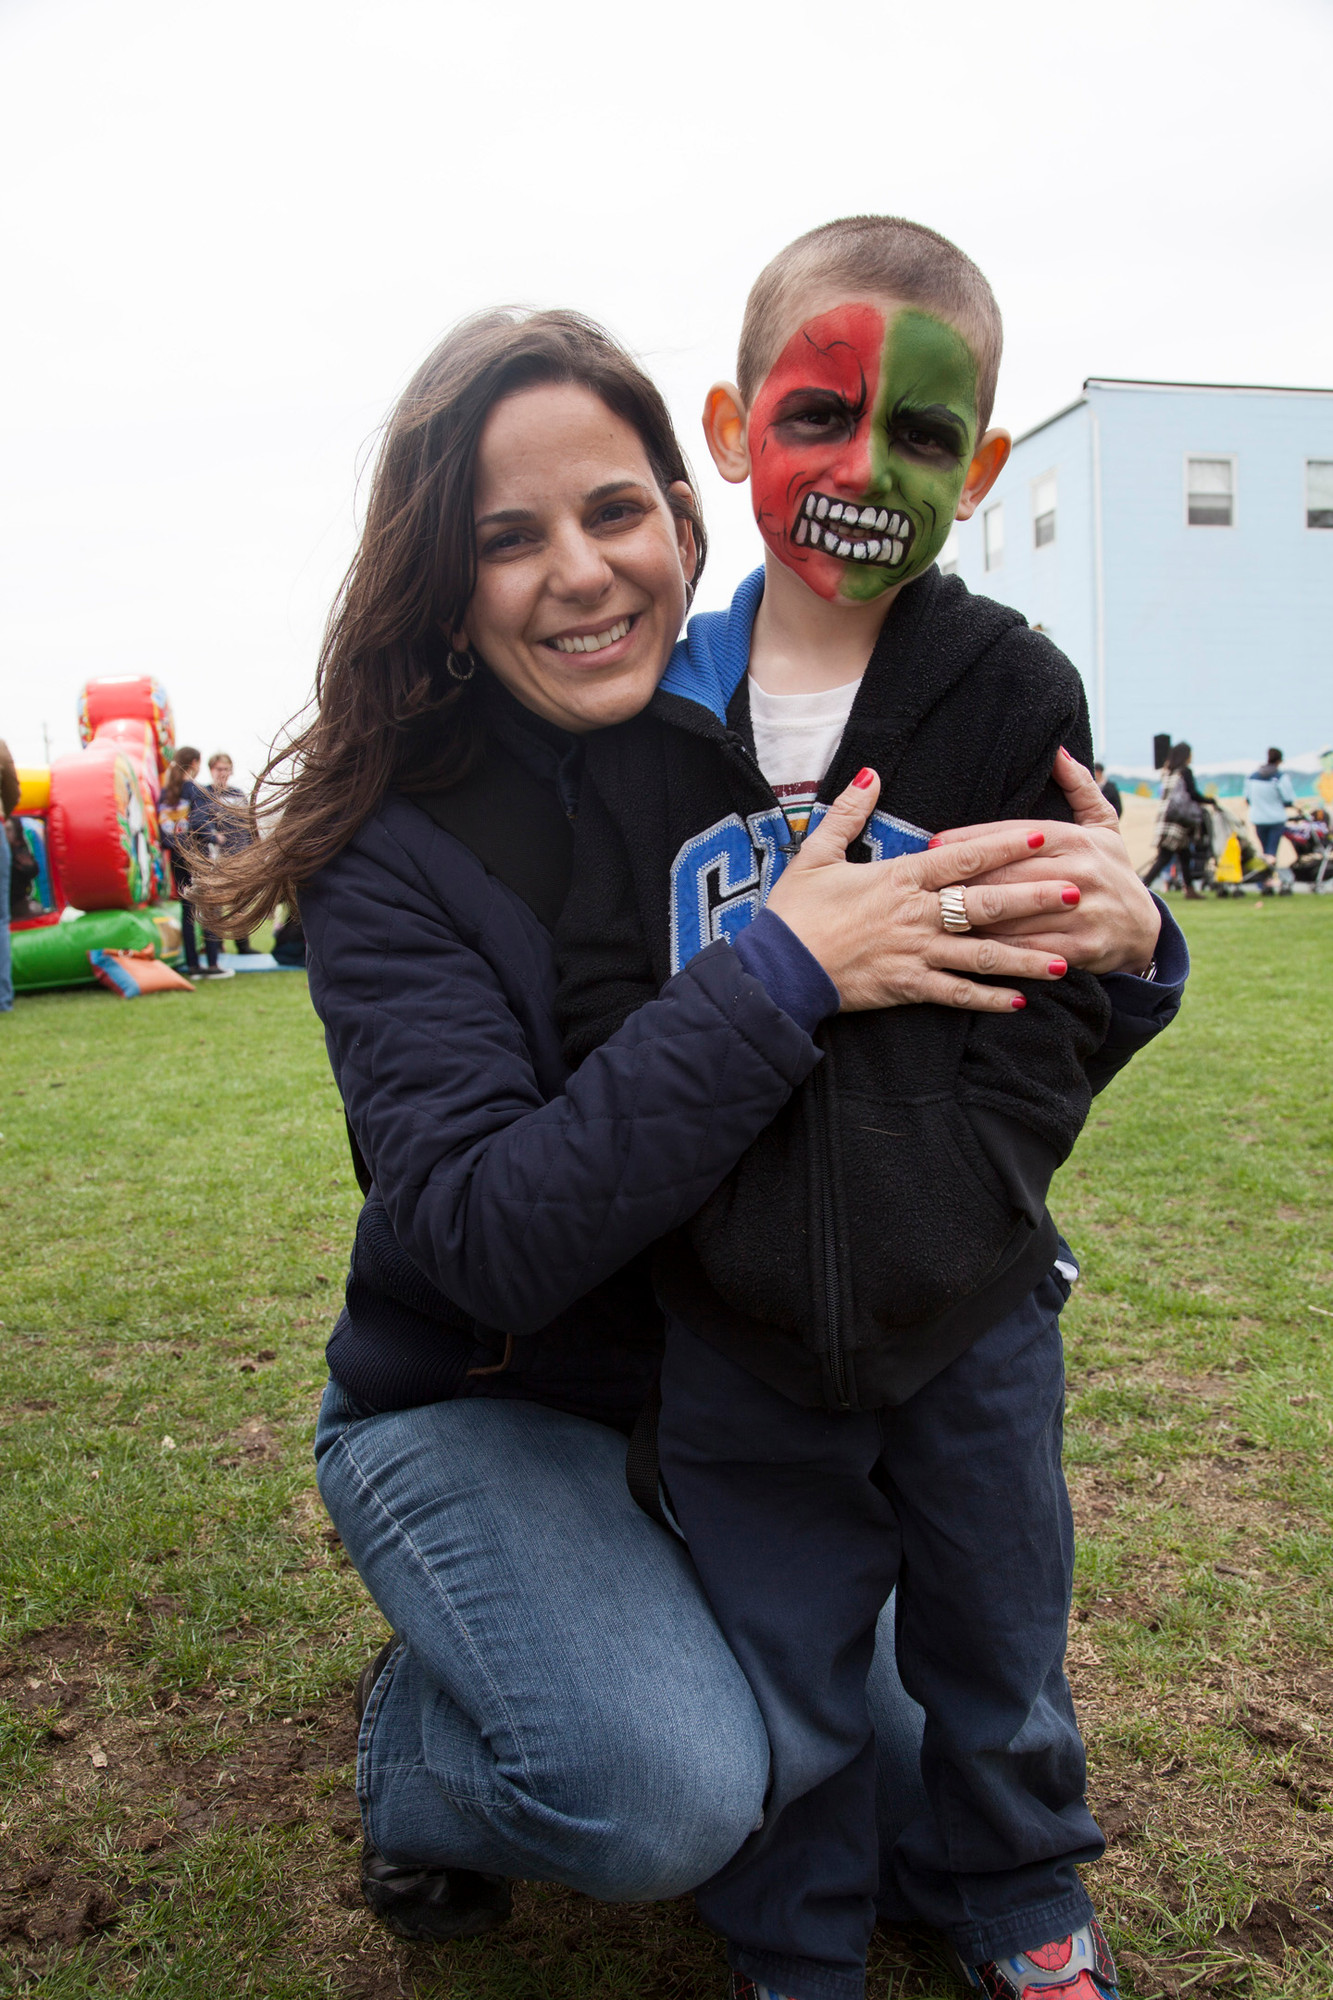 Dana Randazzo hugged her cute (and scary) son, Jack, 4, after he had his face painted.